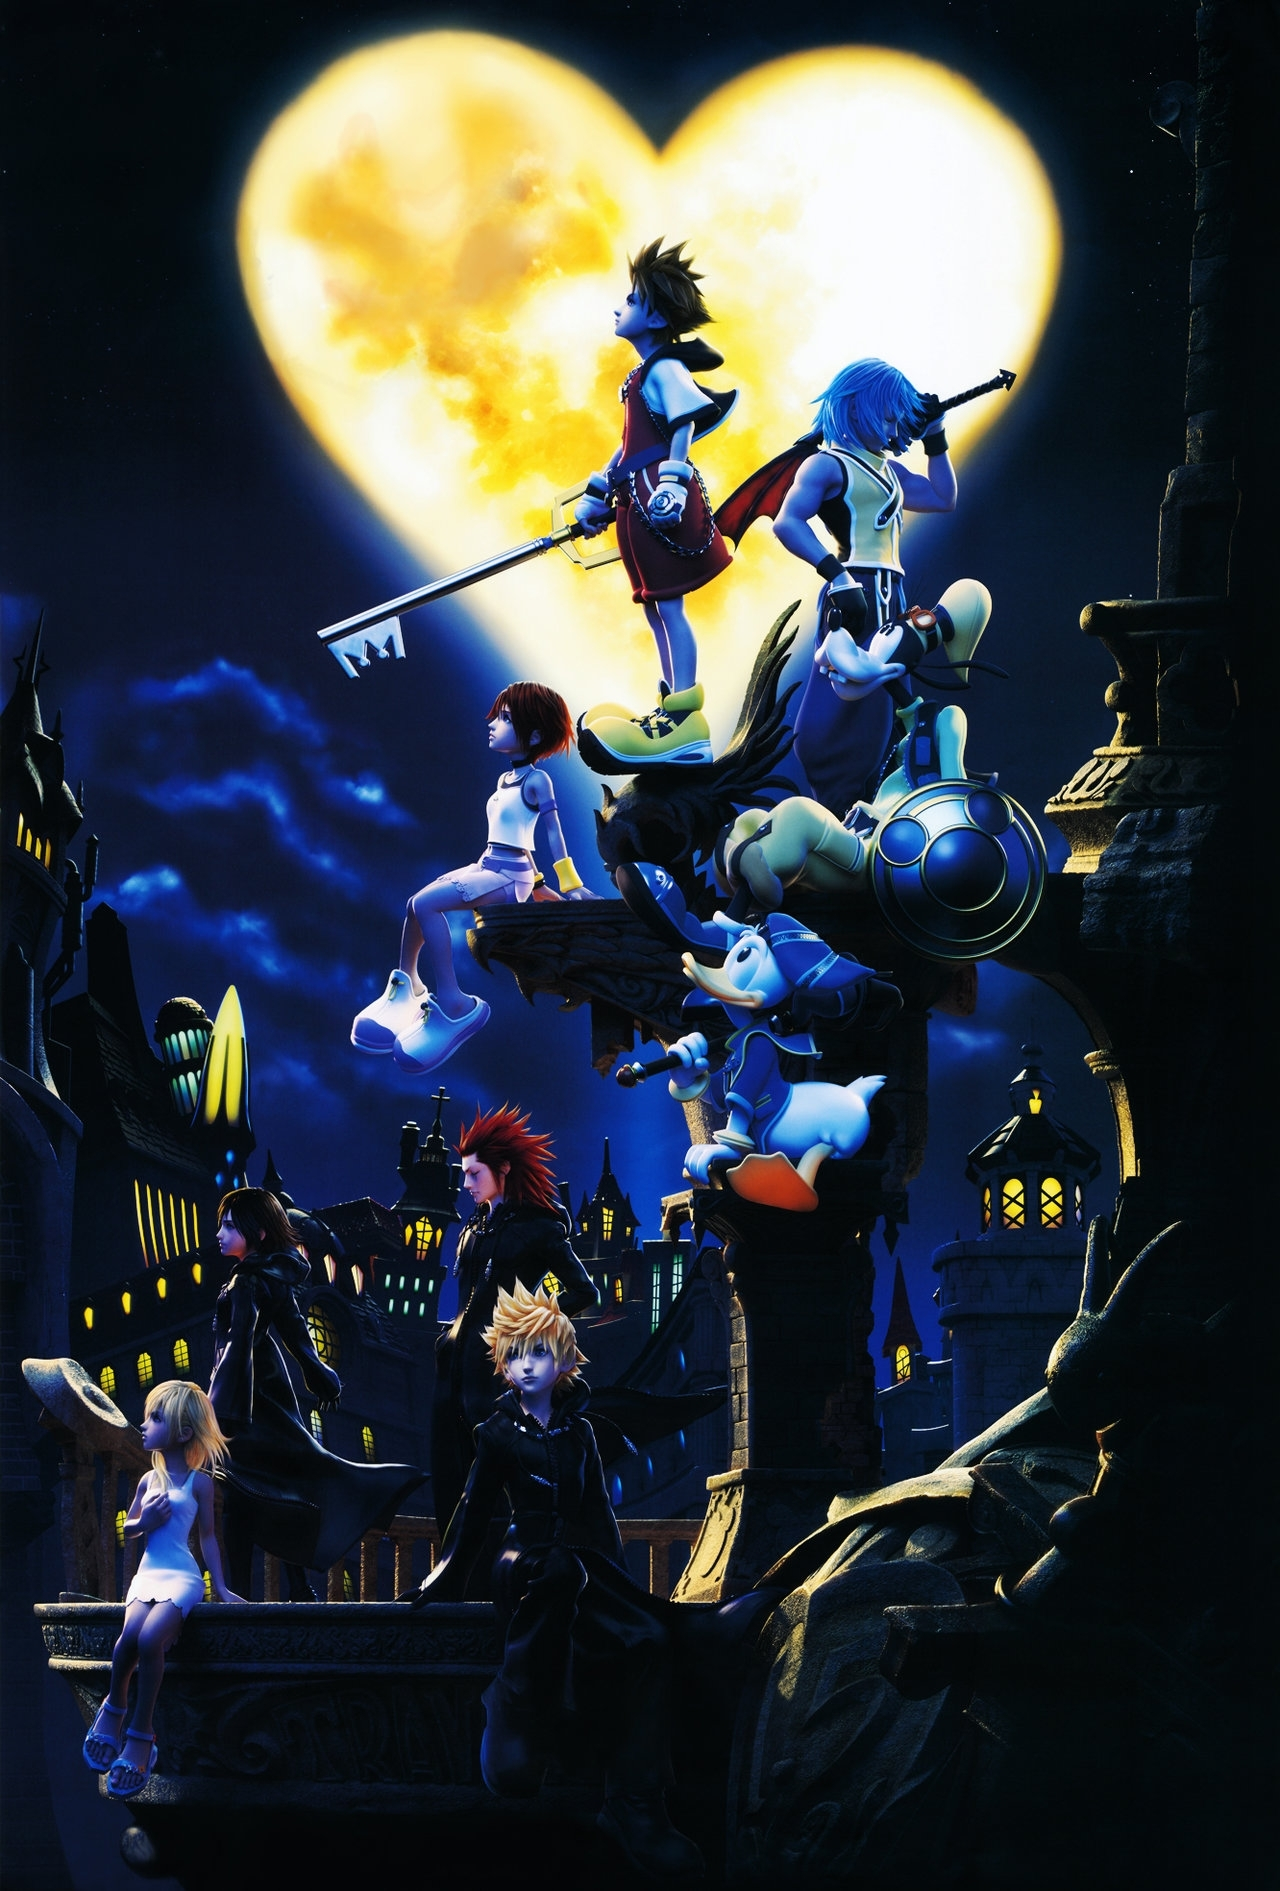 kingdom hearts wallpapers hd - wallpaper cave | beautiful wallpapers